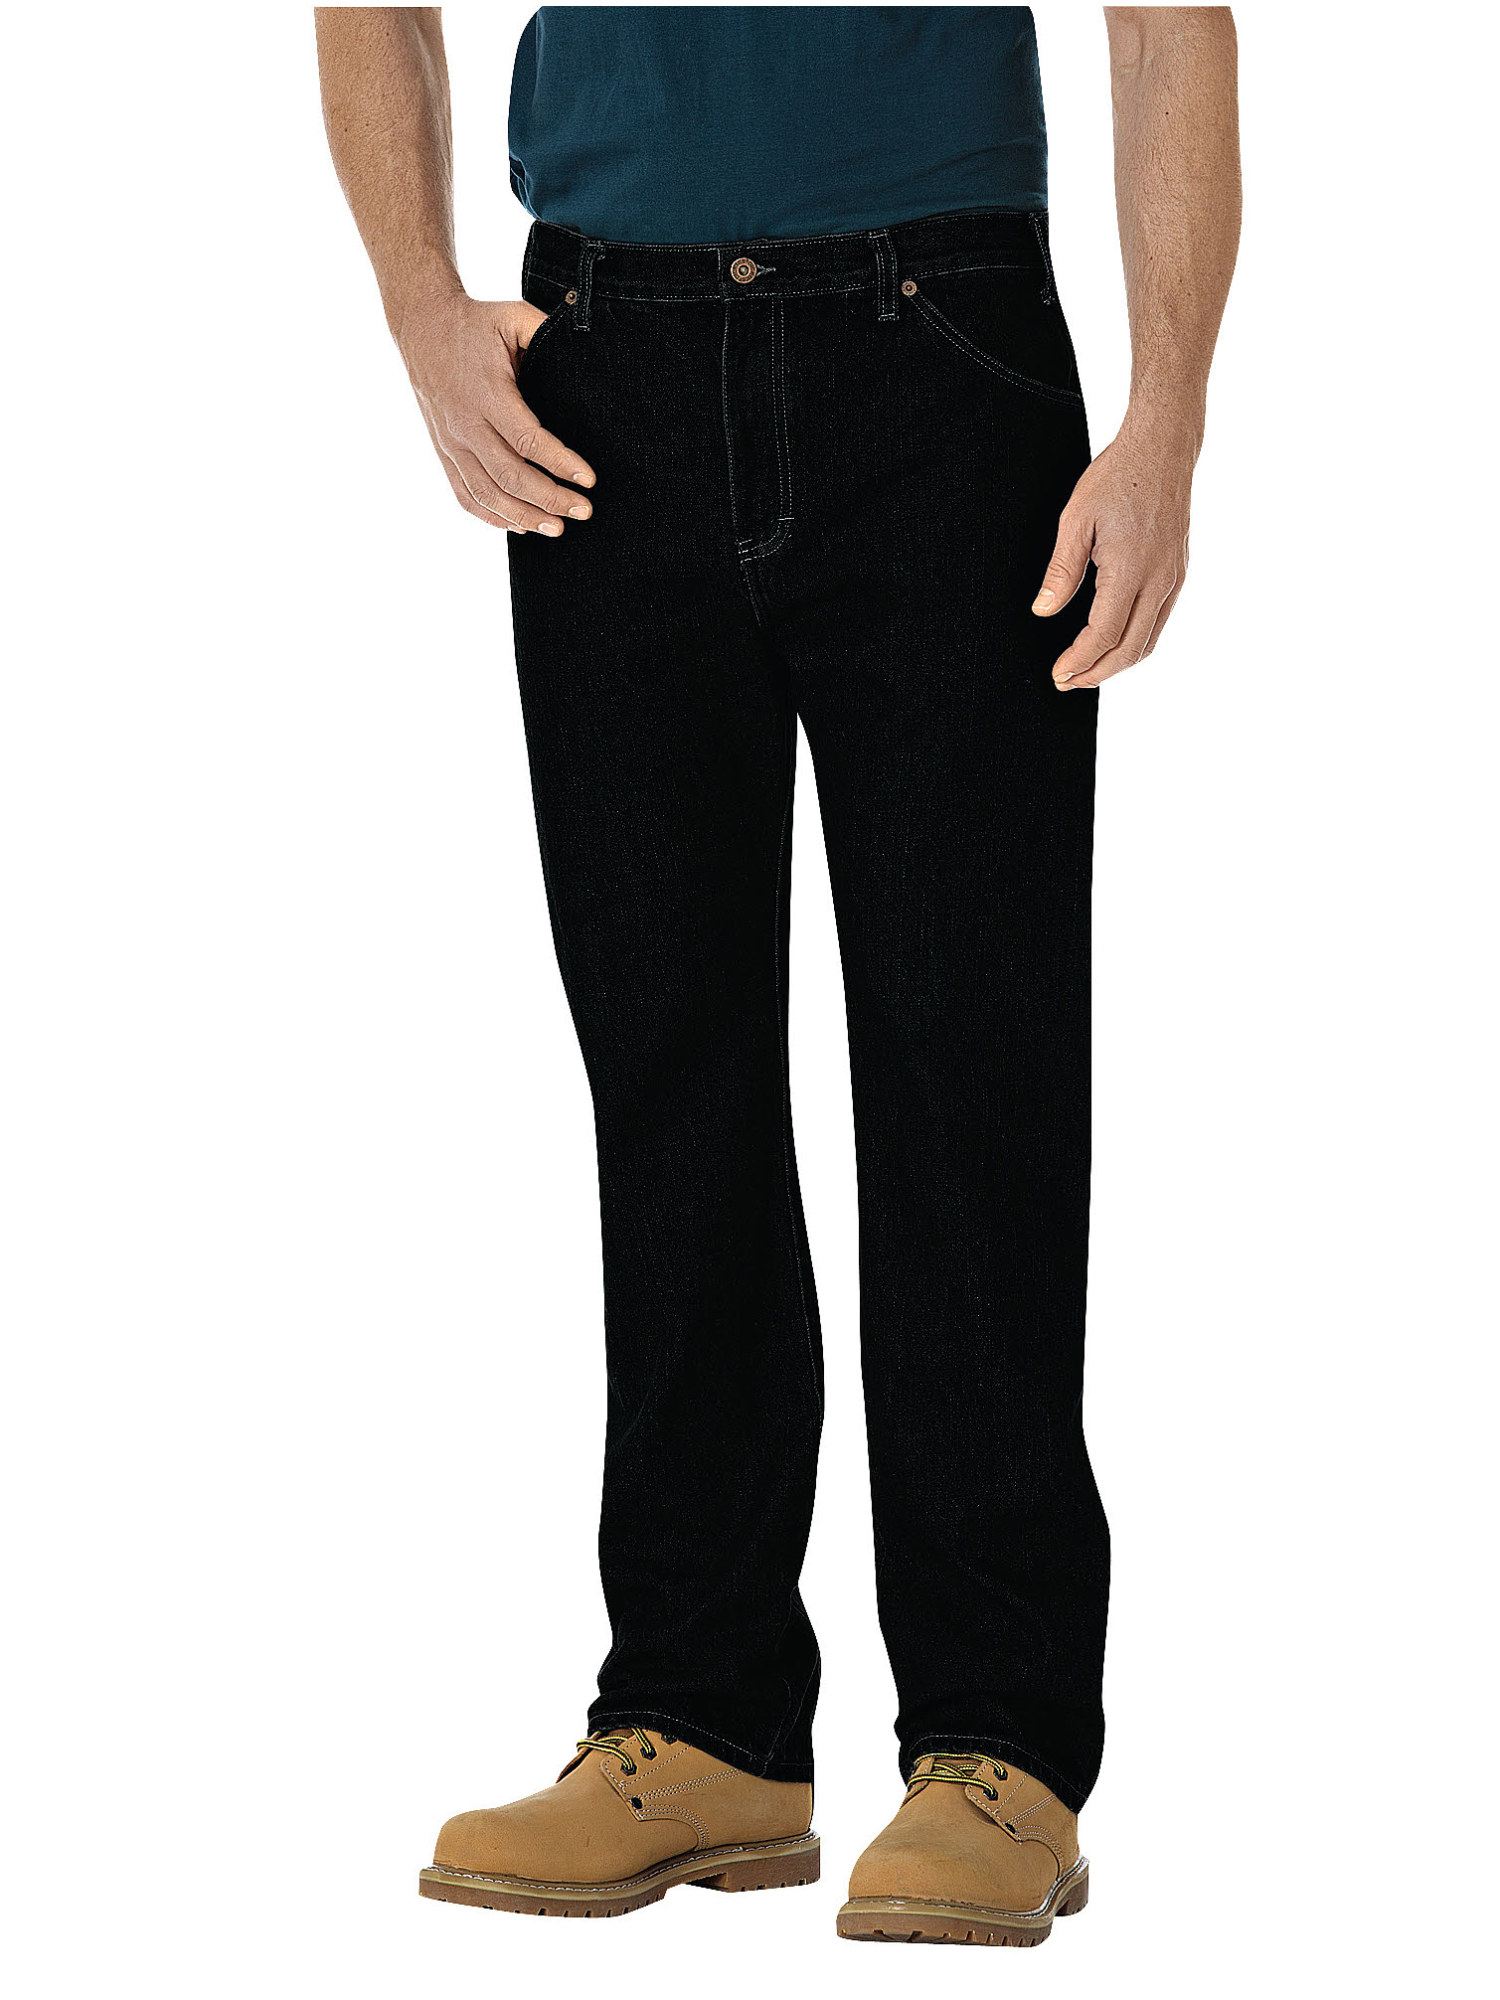 Big Men's 6-Pocket Regular Fit Denim Jean